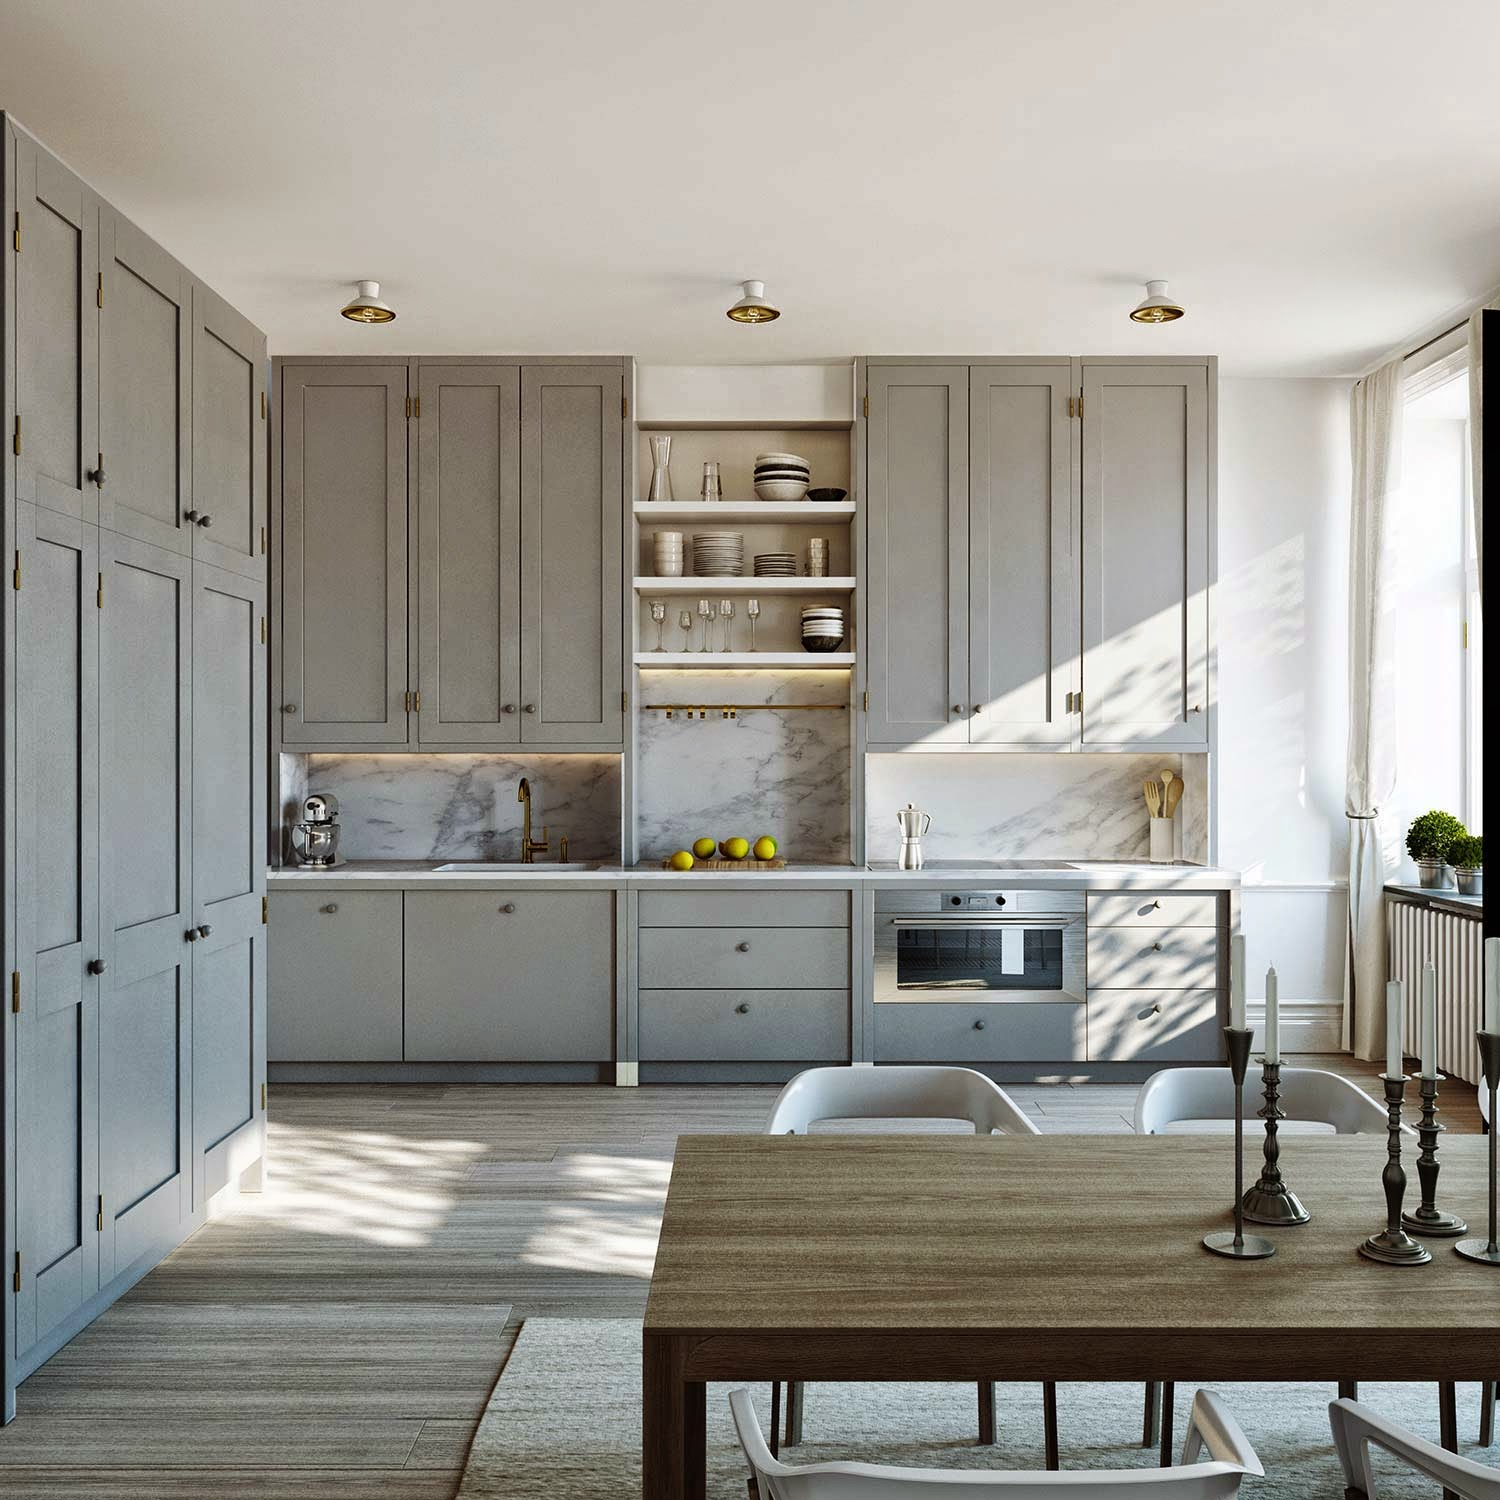 Grey Kitchen Ideas That Are Sophisticated And Stylish: NÅGOT VITT: GRÅTT KÖK